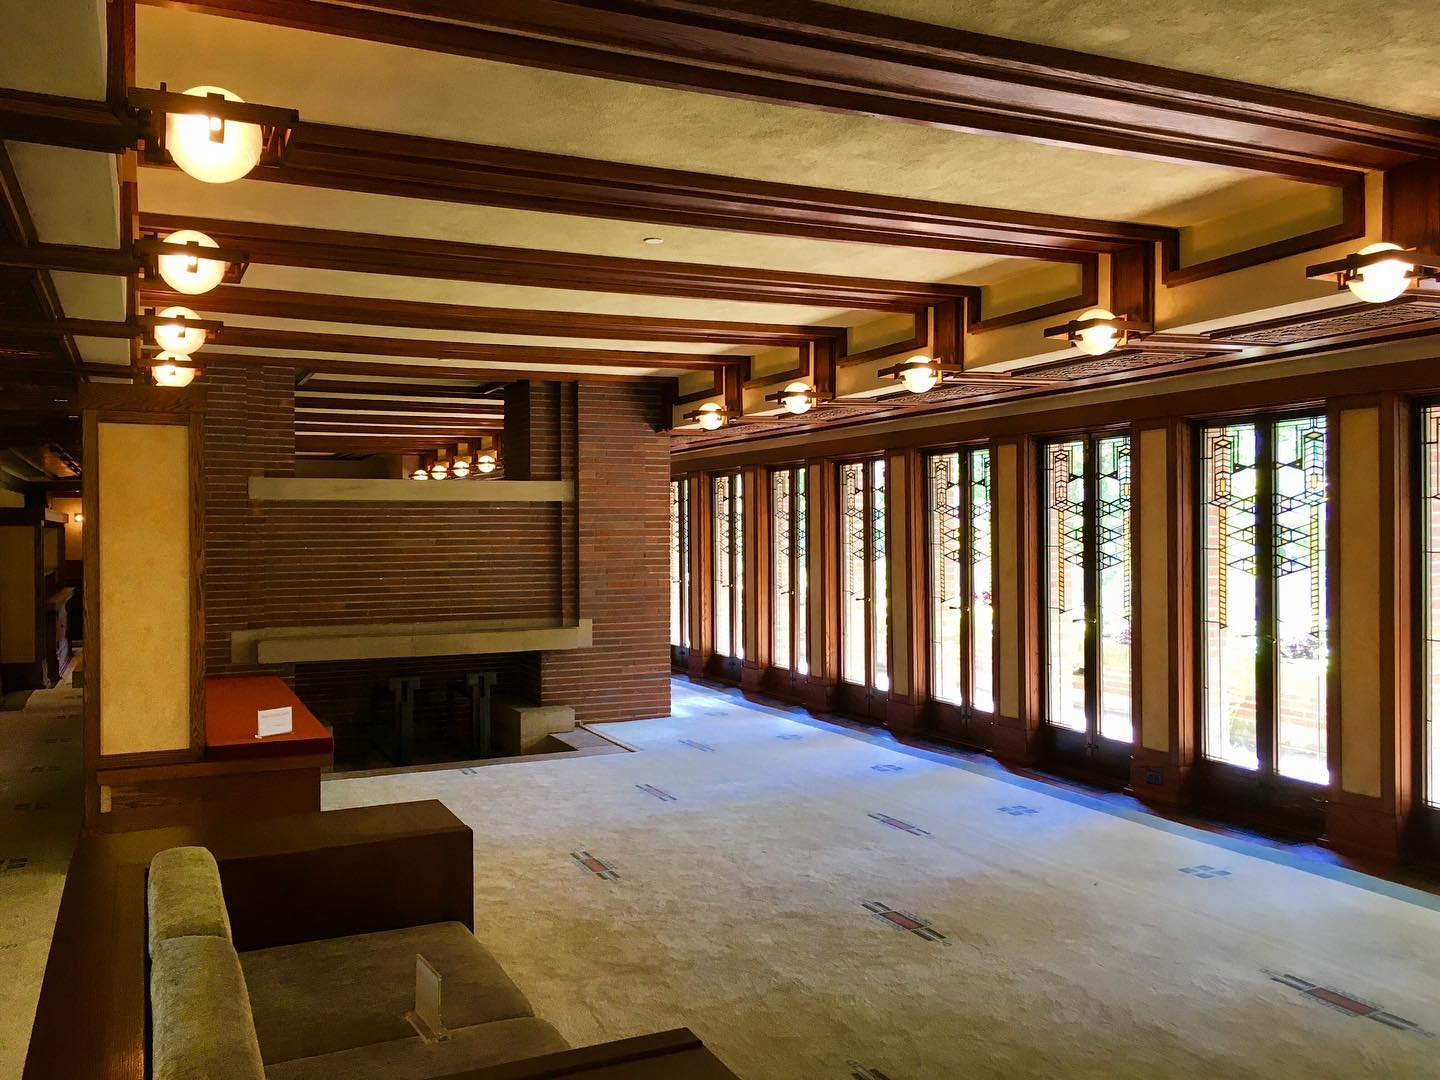 Another dream home by Frank Lloyd Wright. Robie House in Chicago, IL.